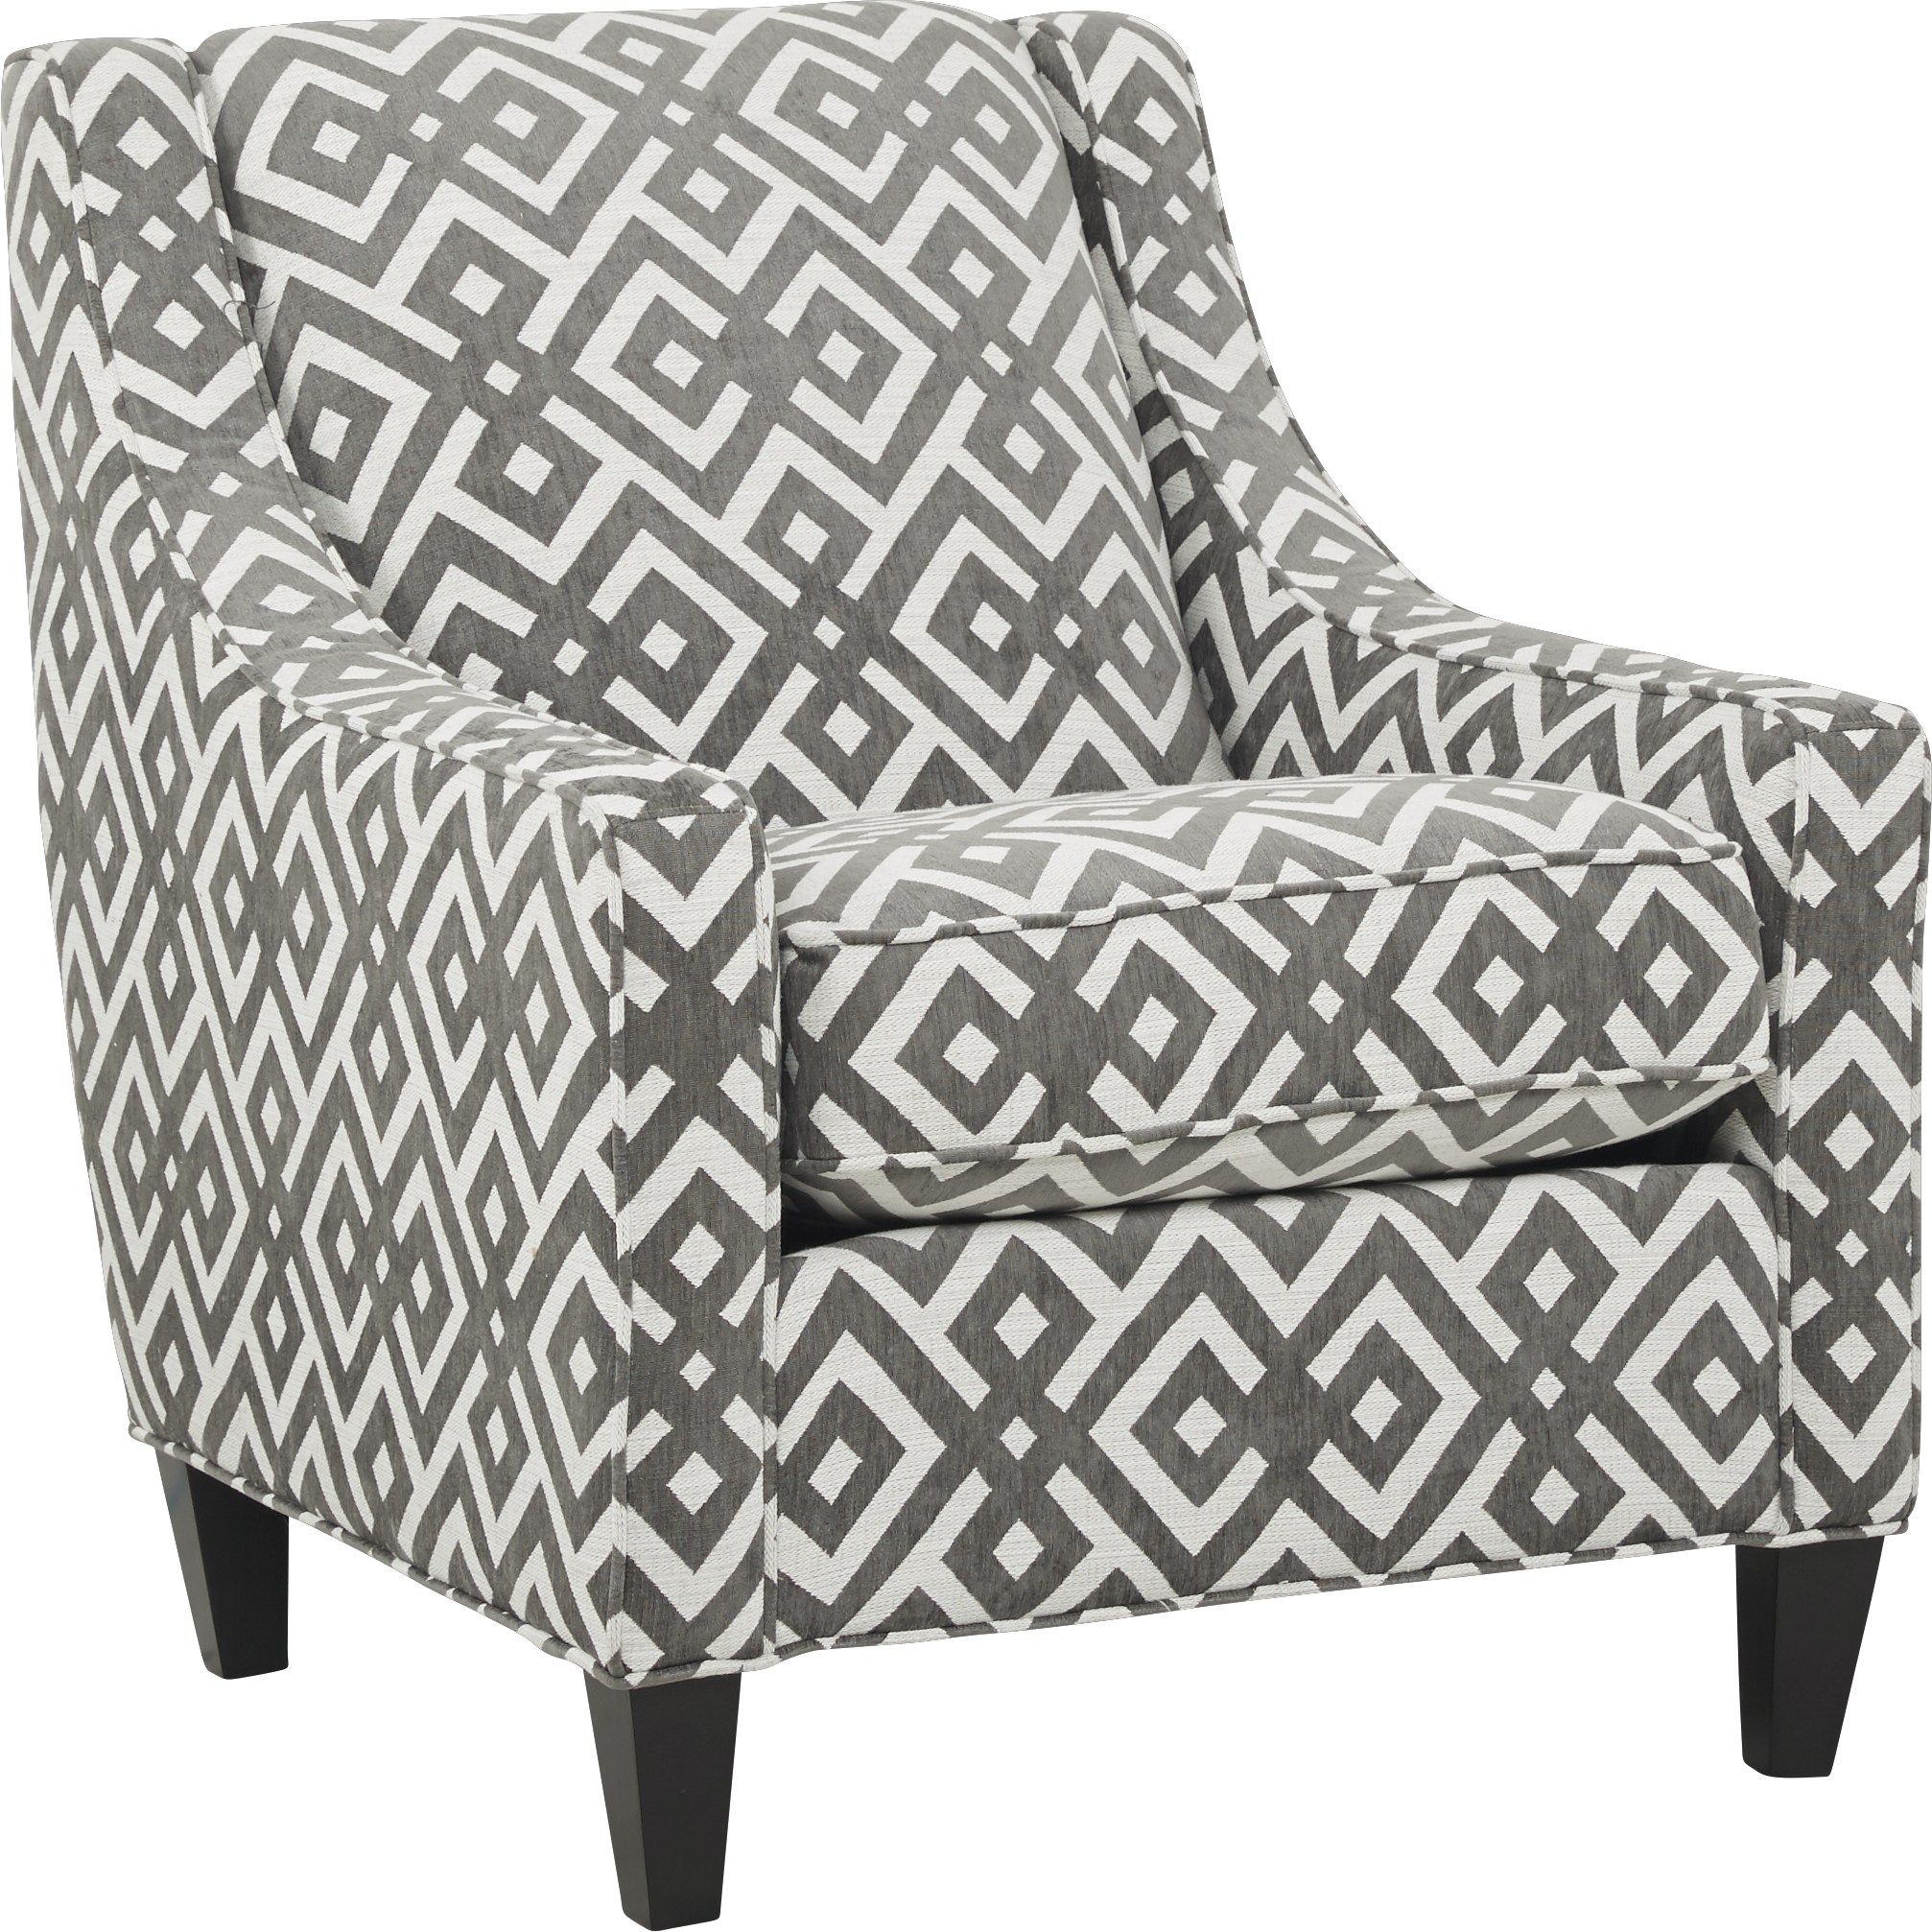 Cindy Crawford Home Chelsea Hills Gray Accent Chair Grey Accent Chair Accent Chairs For Living Room Accent Chairs